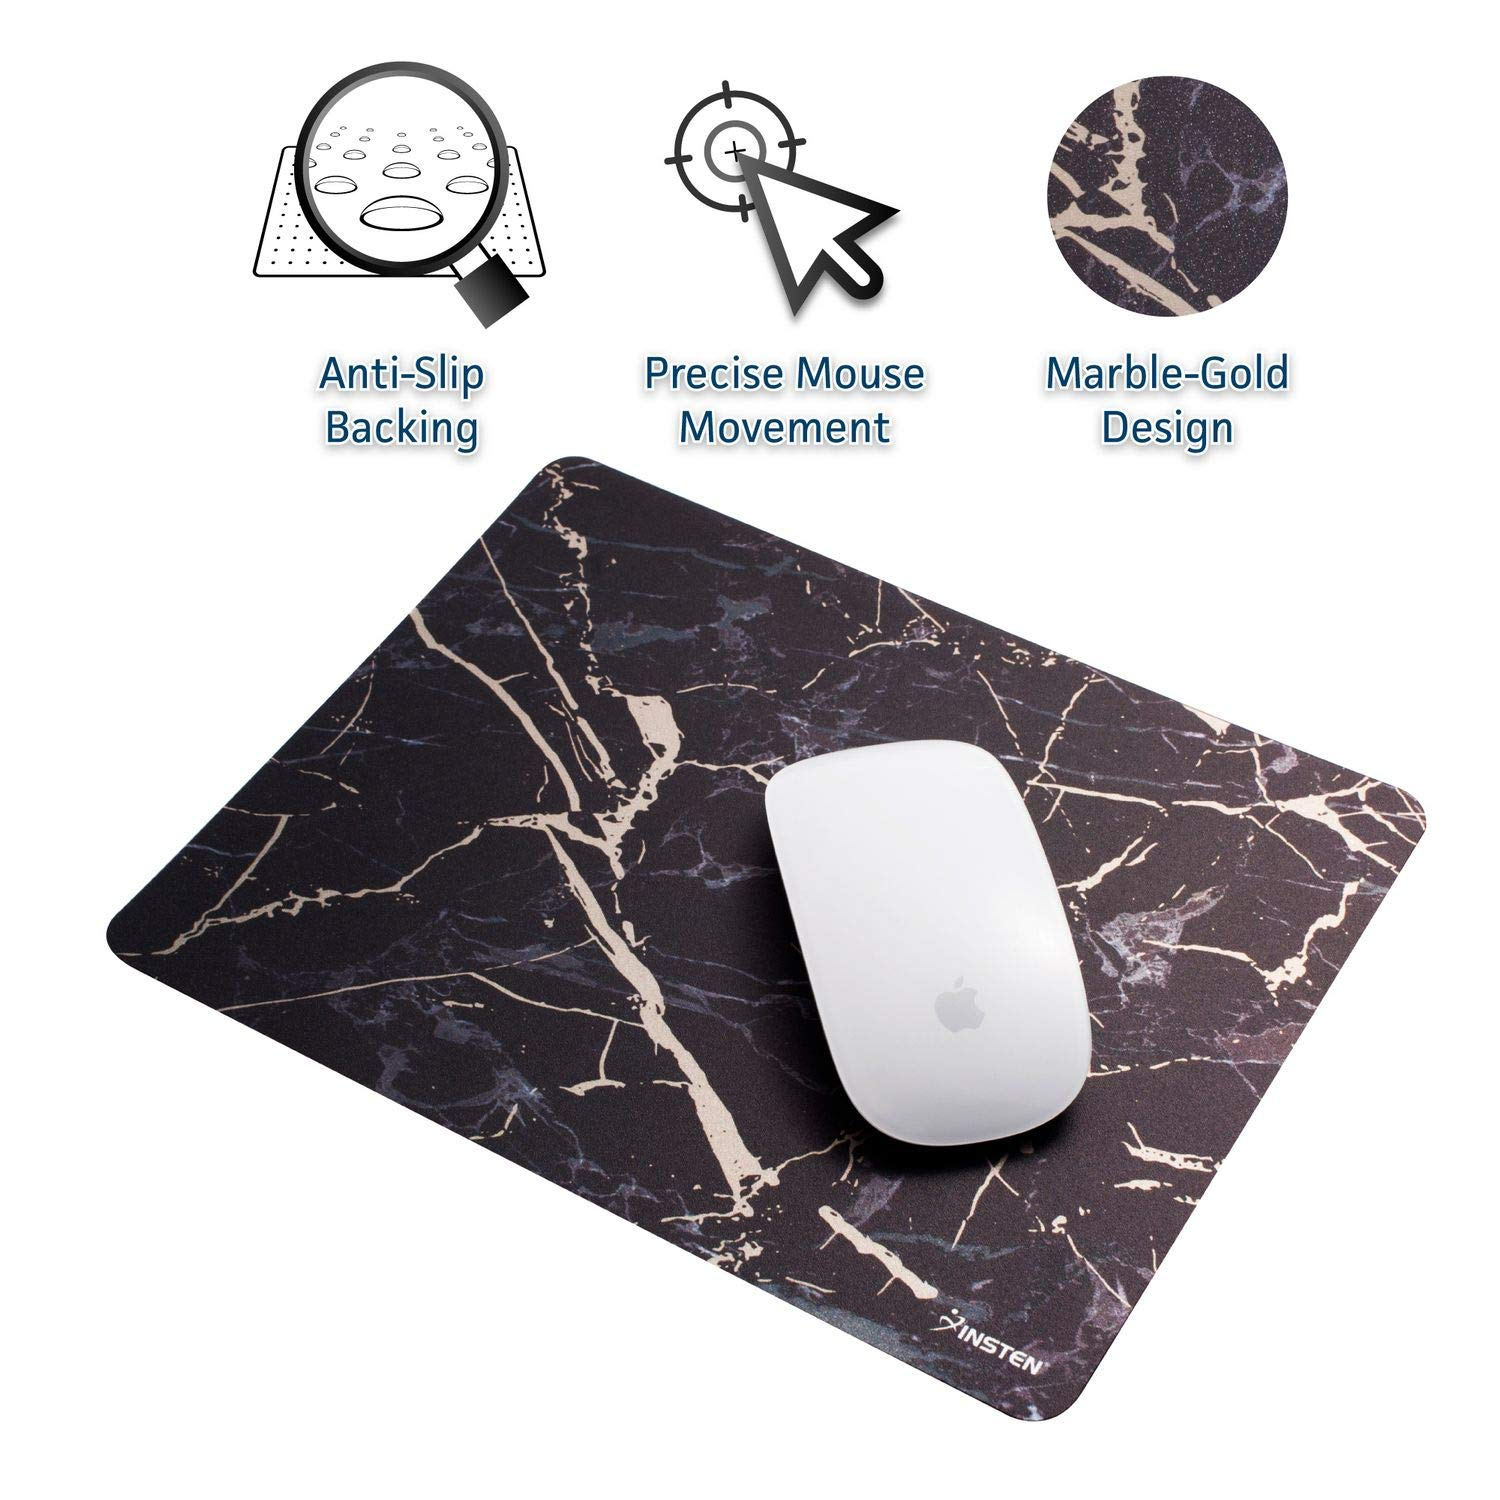 Insten Shiny Marble Mouse Pad - Black/Gold Marble, Premium Ultra Slim Hard Plastic, Silky Smooth & Super Light w/Anti Slip Backing, Rectangle Mat for Desktops, PC & Laptops - 9.45 X 7.48 eForCity